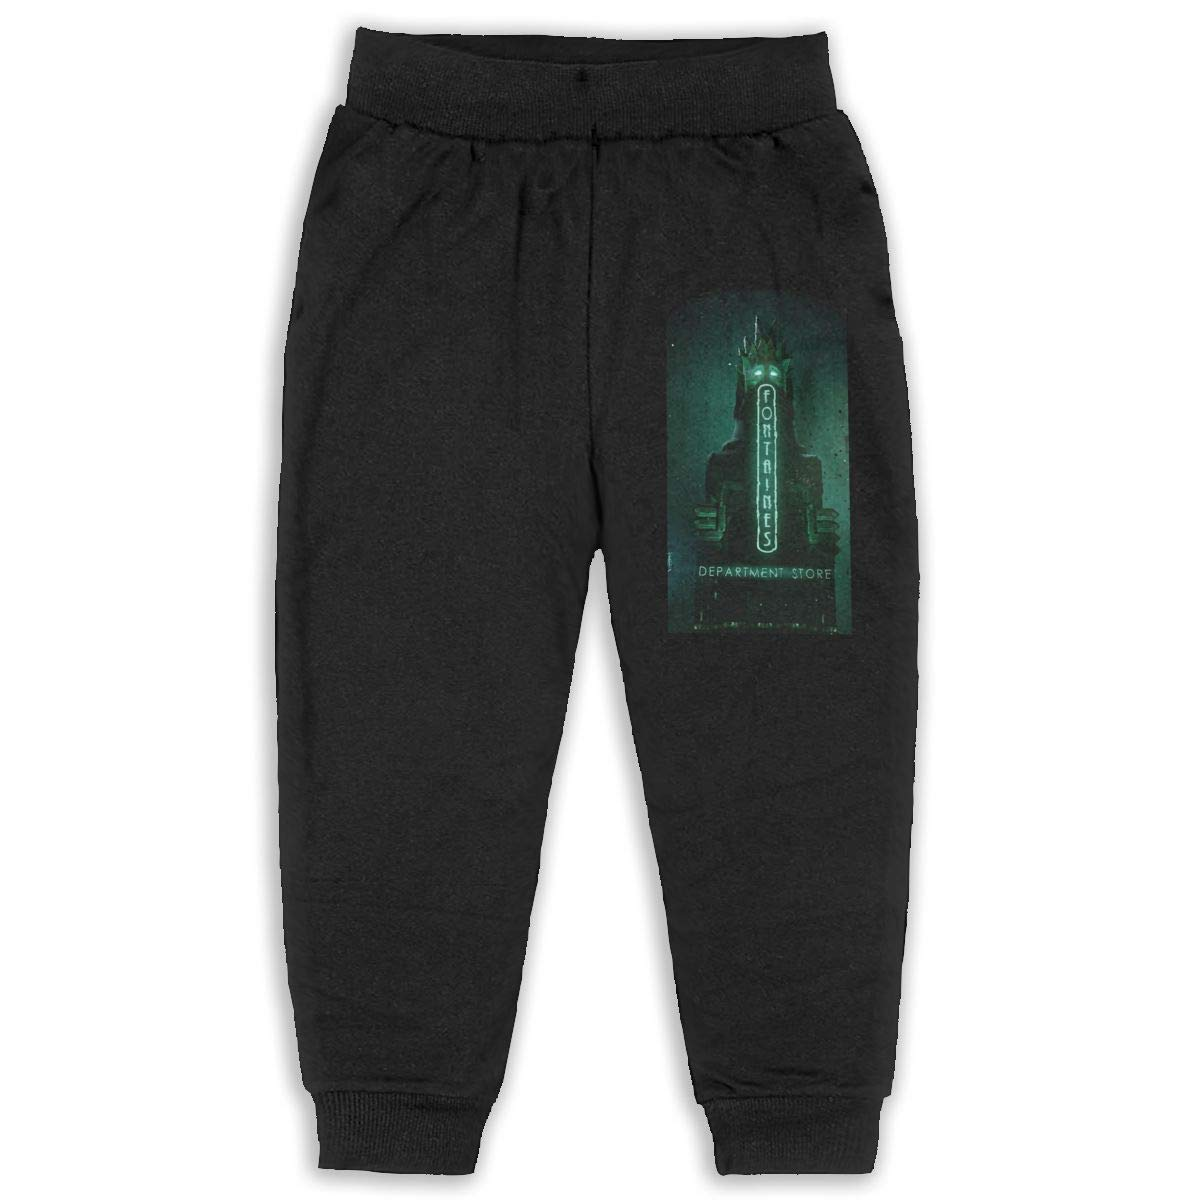 Pleasantly Bioshock Wallpaper Long Pants Sweatpants for Unisex Childrens Casual Trousers Black